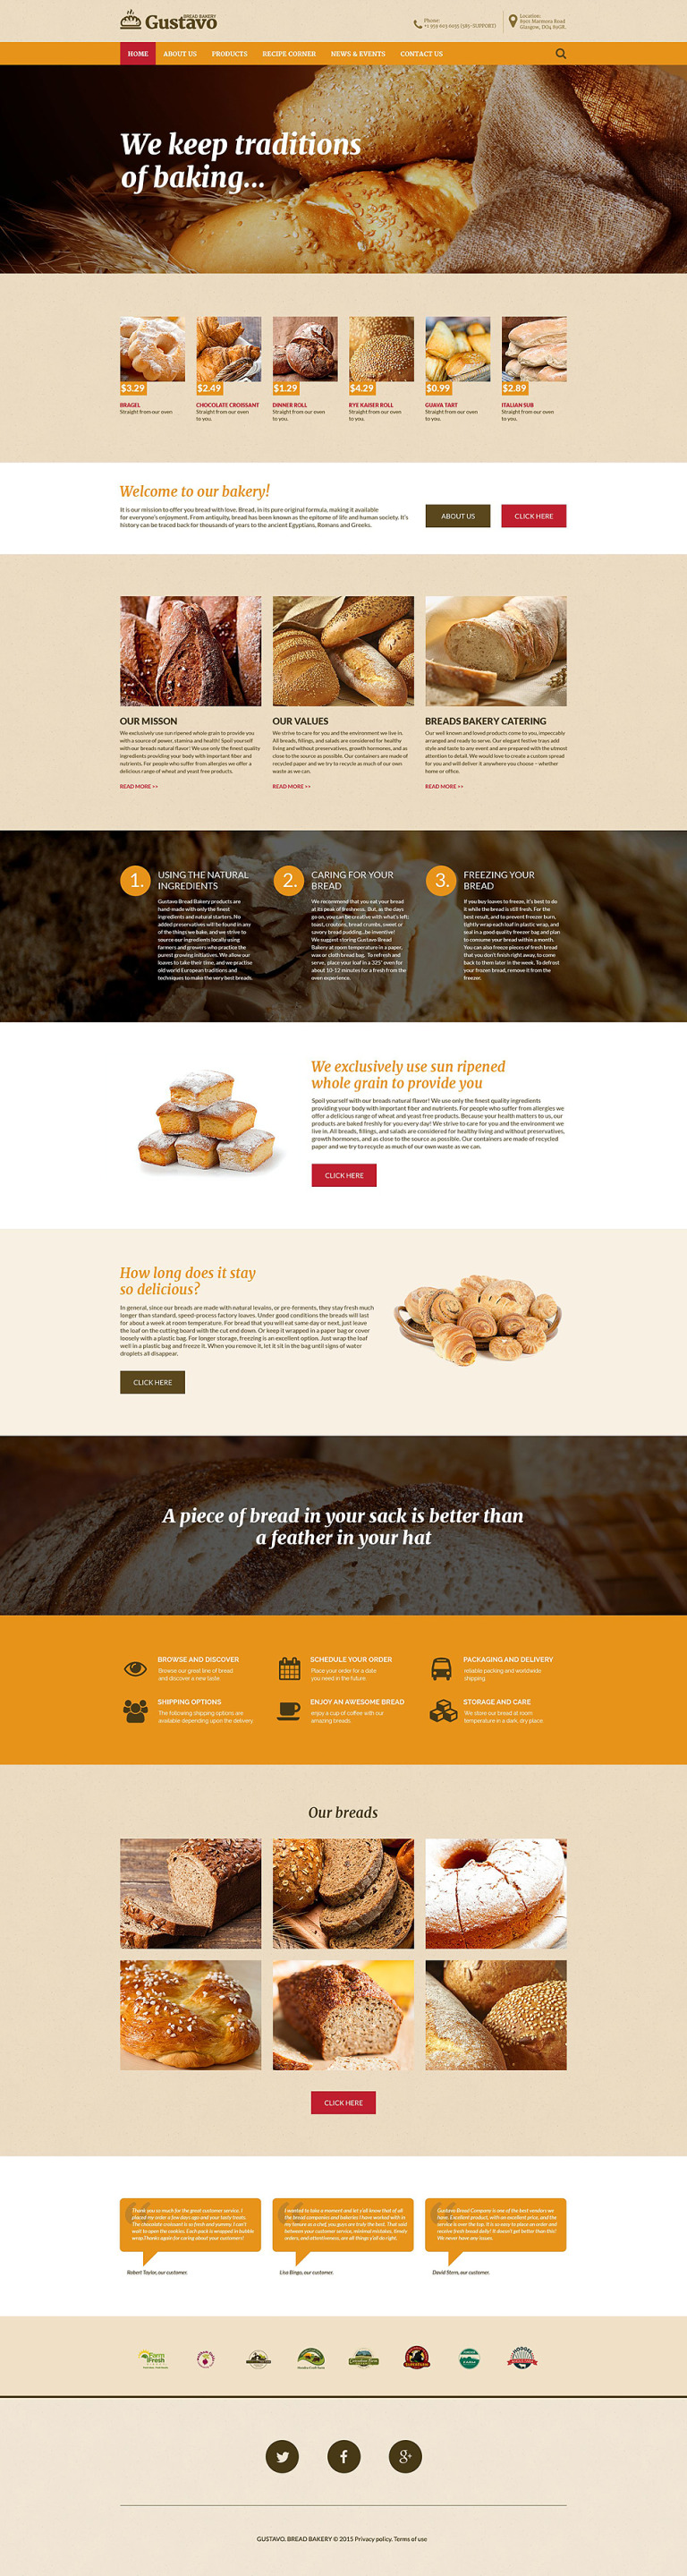 Gustavo Website Template New Screenshots BIG